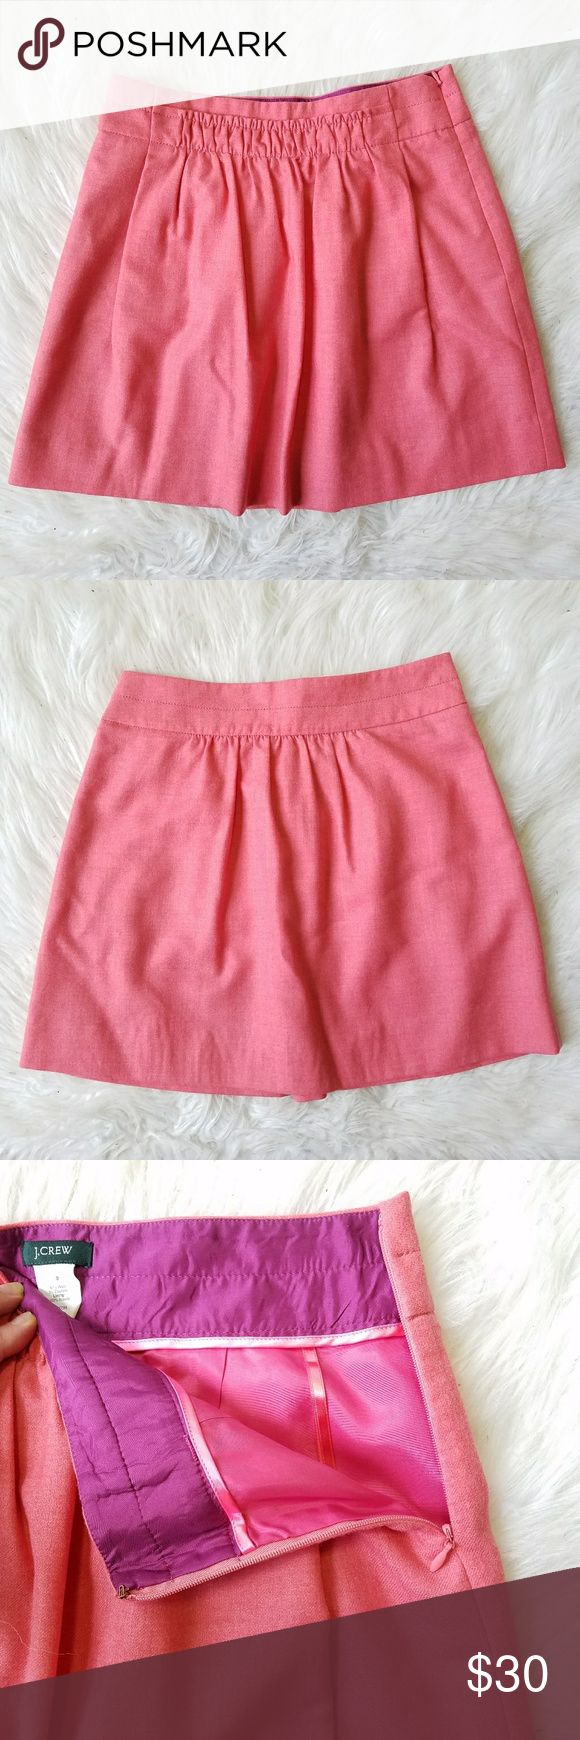 """J. Crew Shirred Wool A-Line Skirt J. Crew. Women's 0. Color: Pink / Coral Shirred ruffle front. Side zip. Front pockets.  97% Wool. 3% Elastane. Fully lined. Excellent condition! Waist- 14"""" Length- 17"""" J. Crew Skirts"""